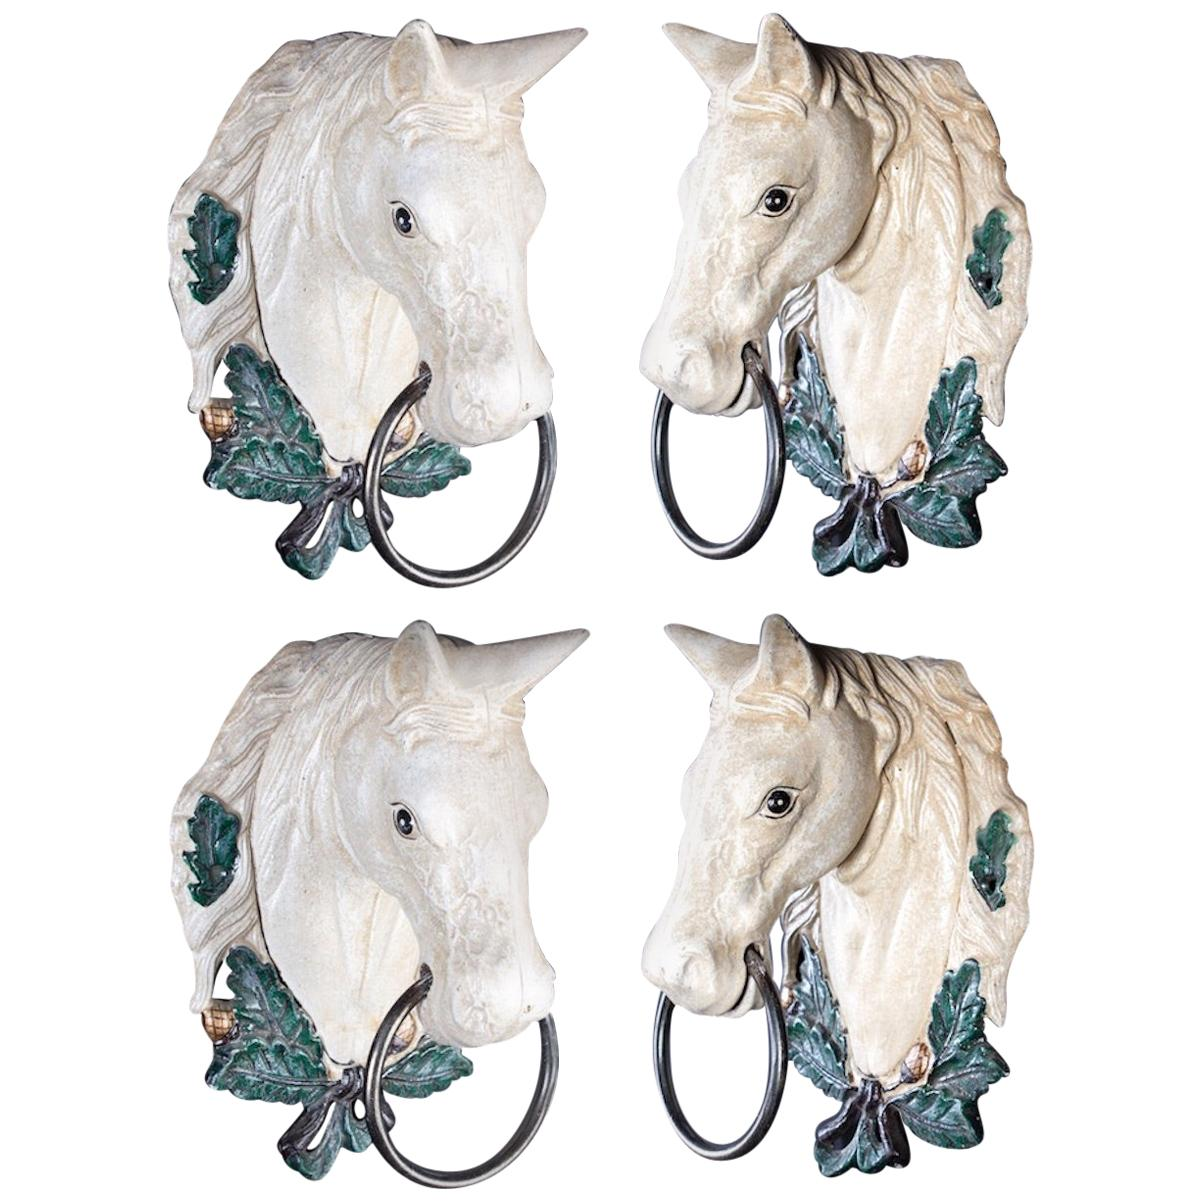 Four Delicious Painted Metal Horse Head Sculptures, 1970